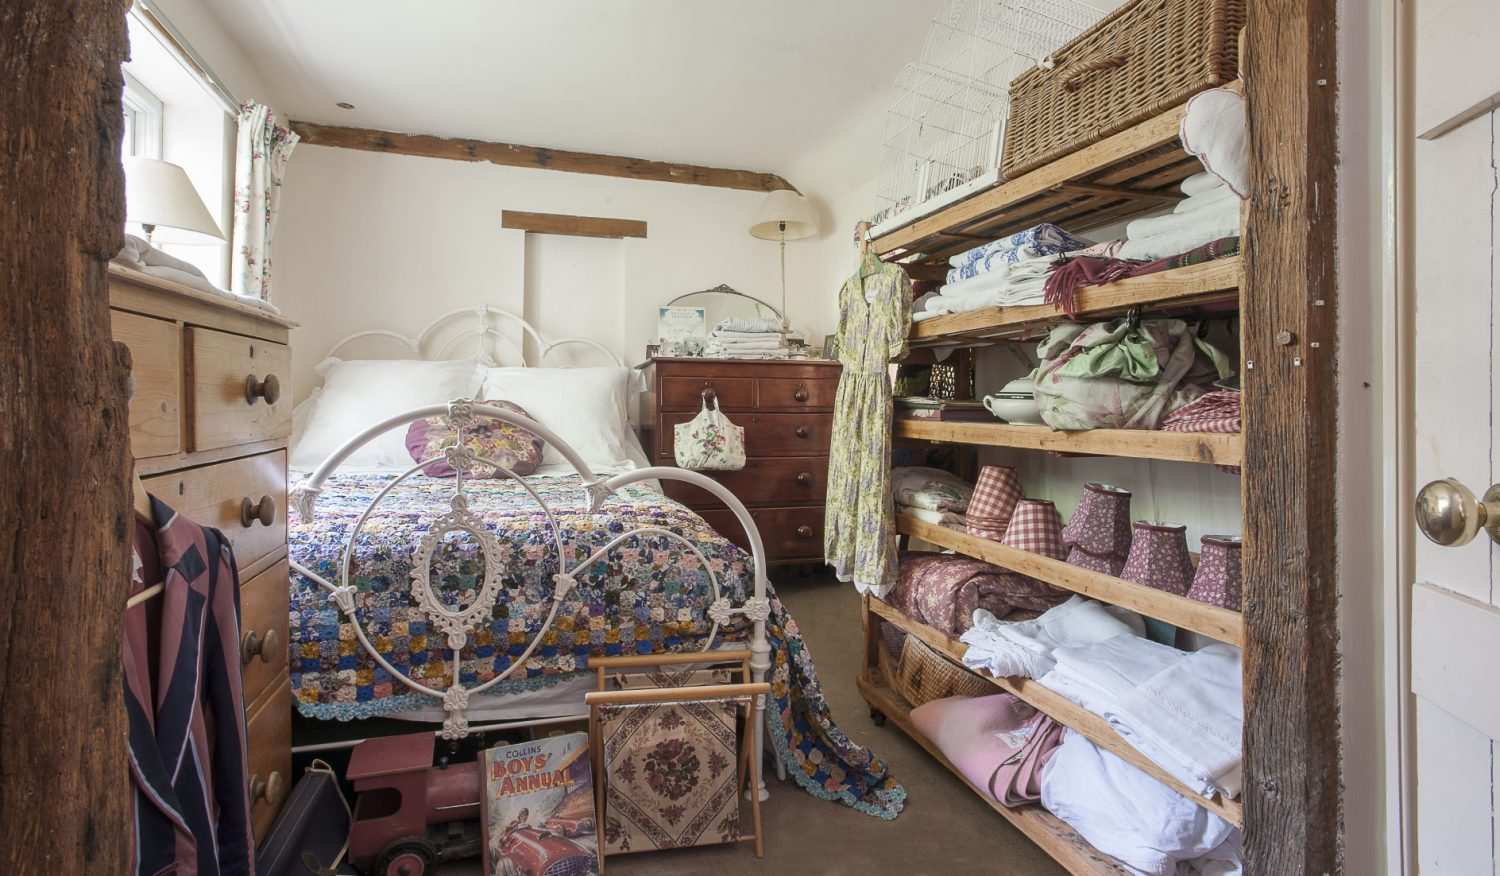 Shelves in the guest bedroom are home to stacks of crisp French linens and a brightly coloured vintage yoyo quilt dresses the painted metal bed